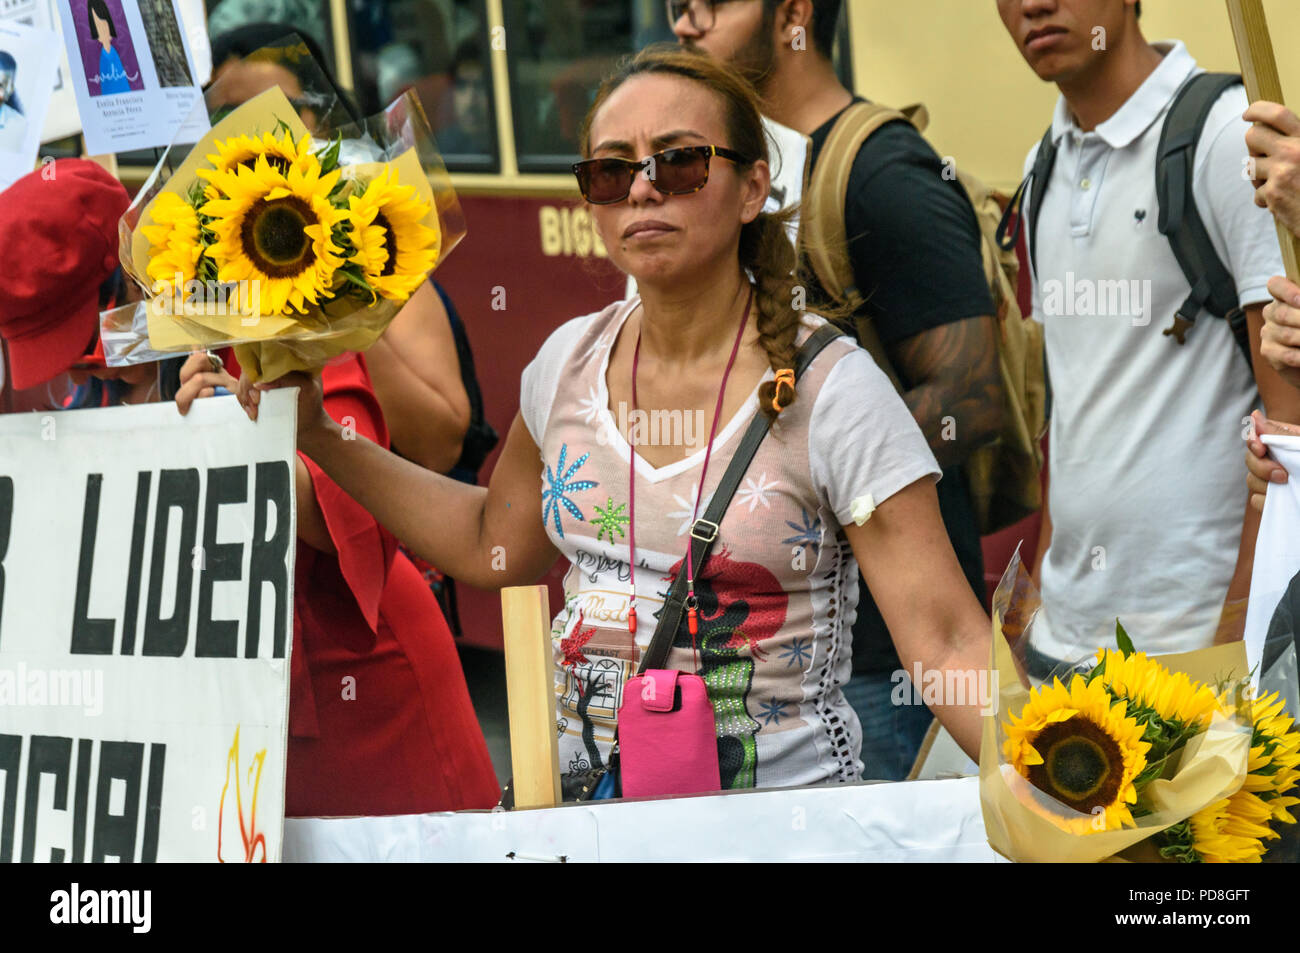 London, UK. 7th August 2018. A Colombian woman holds bunches of sunflowers at a  protest in Parliament Square in support of the peace process in Colombia and demanding an end to the daily threats and murders throughout the country. ook place today at the UN in New York, the International Court of Justice in The Hague, and in Washington Credit: Peter Marshall/Alamy Live NewsStock Photo